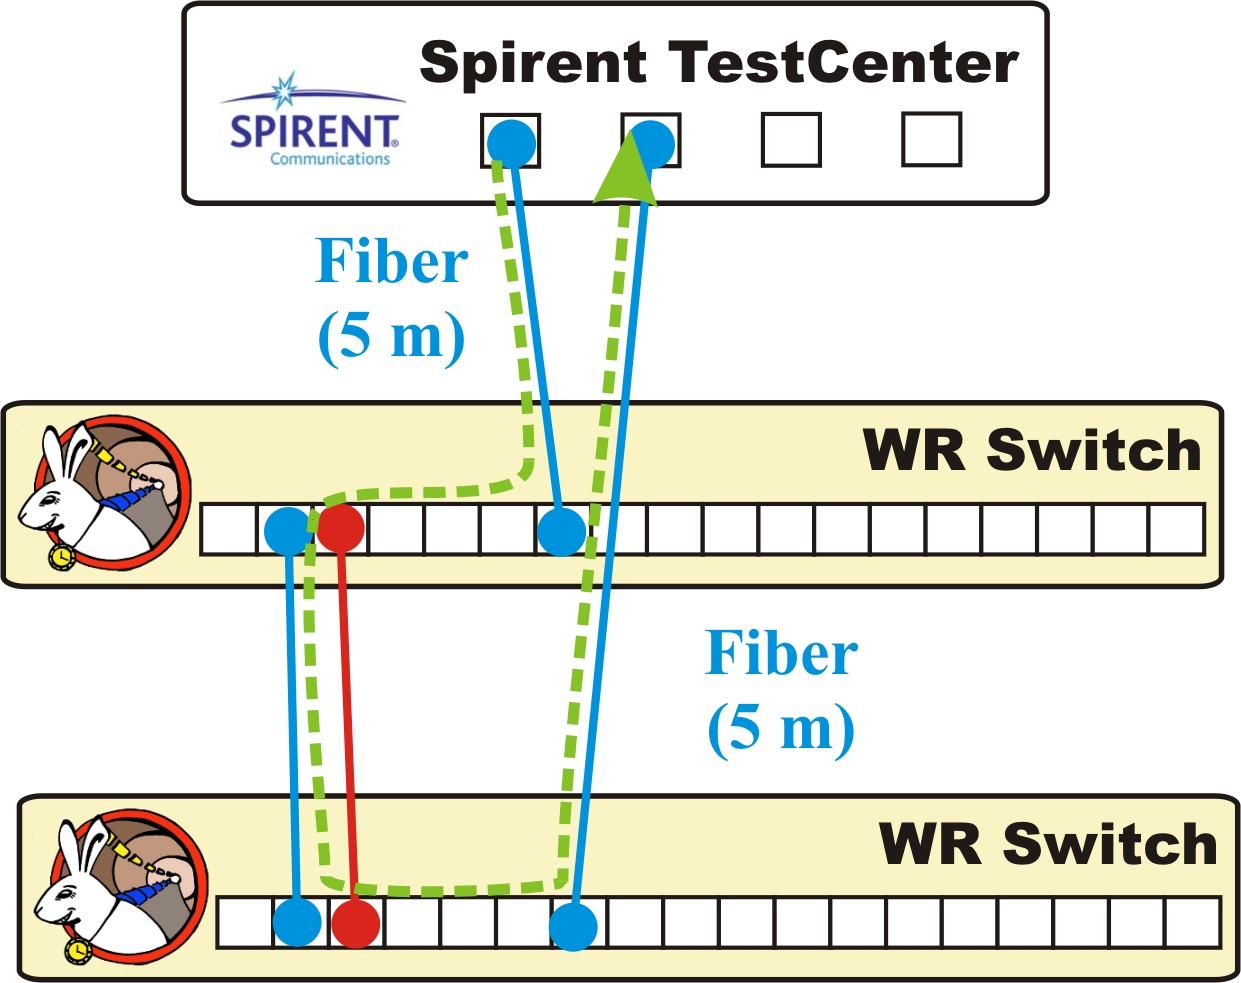 figures/robustness/spirent_tests_setups.jpg